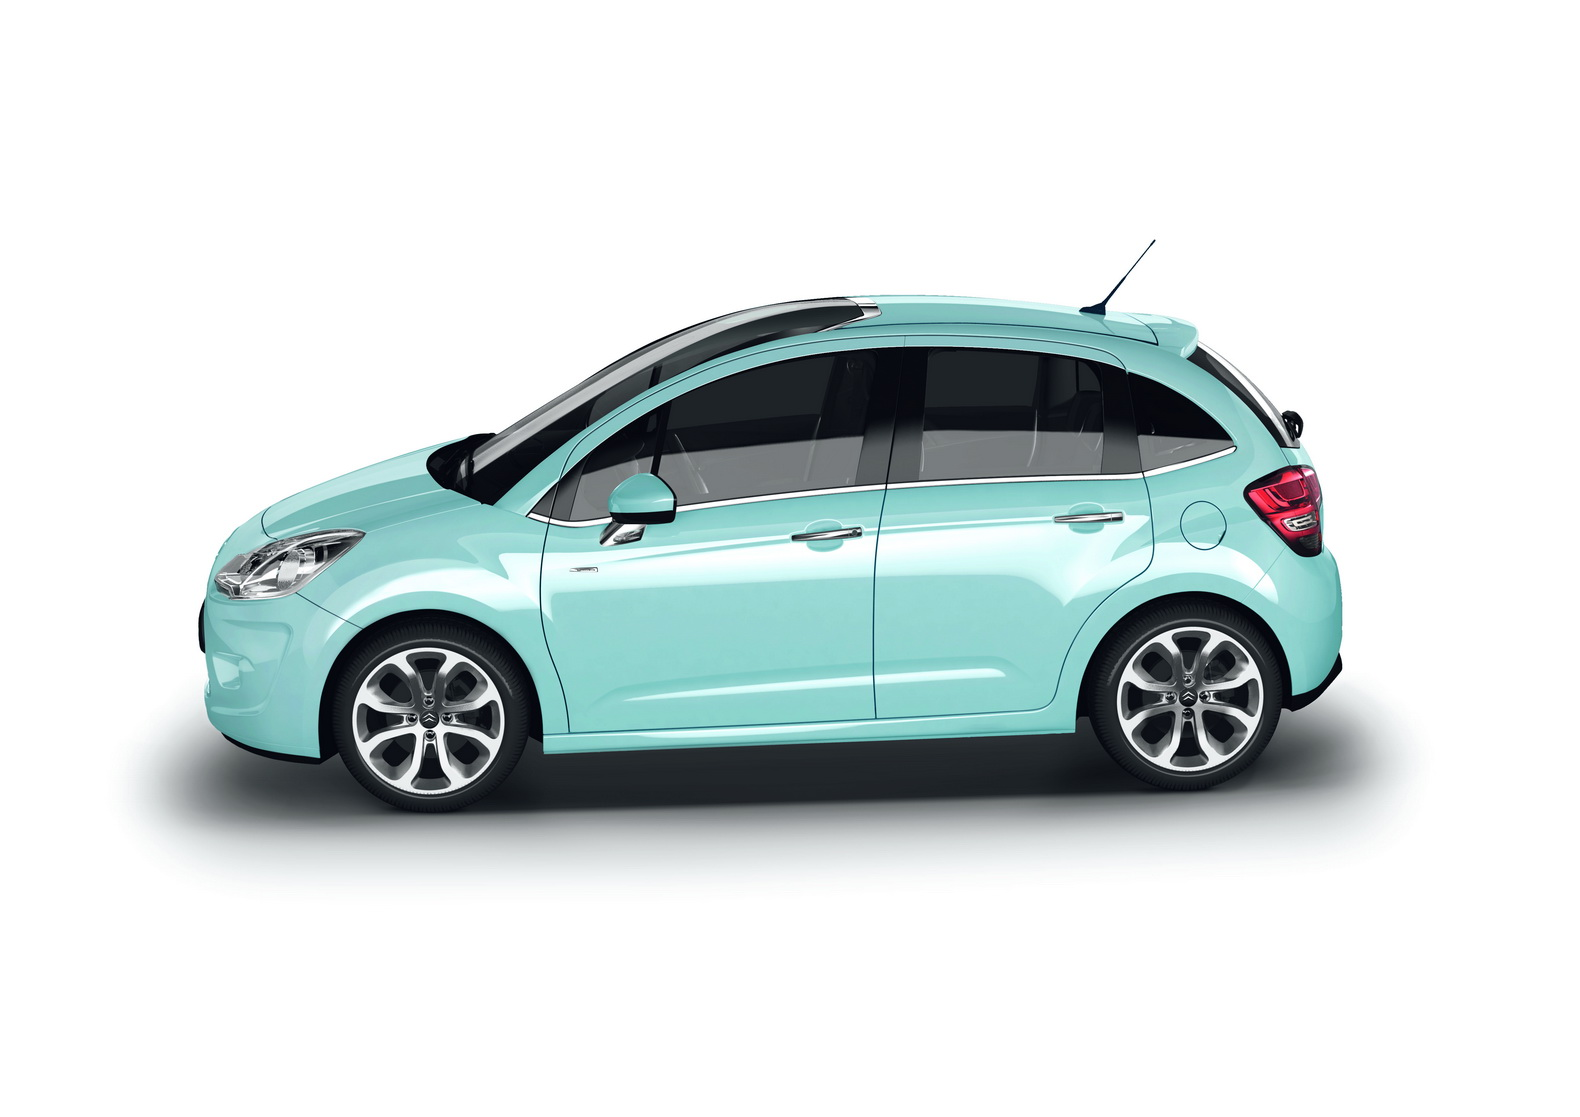 Citroen C3 Hatchback Wallpaper For Computer Wallpaper